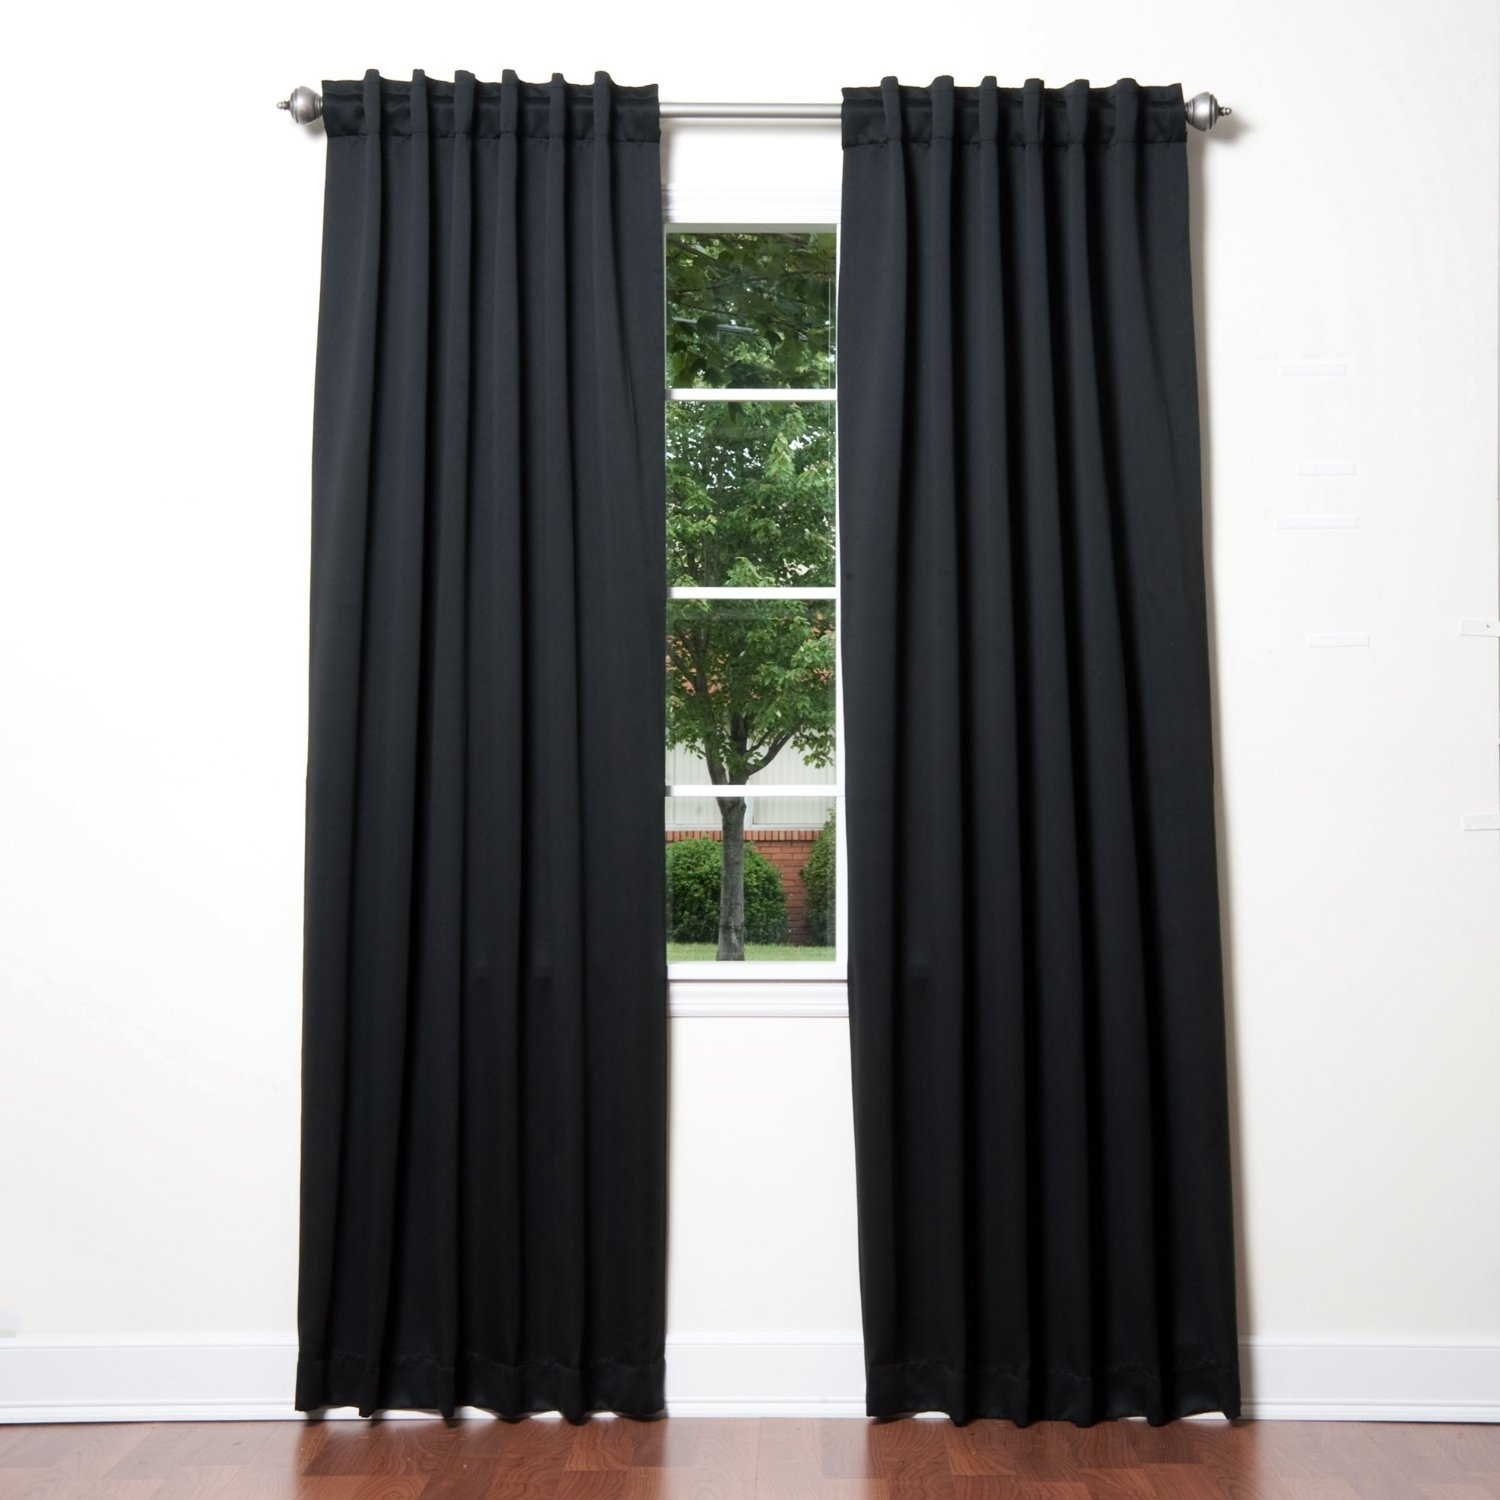 Amazon Best Home Fashion Thermal Insulated Blackout Curtains In Noise And Light Blocking Curtains (Image 2 of 15)